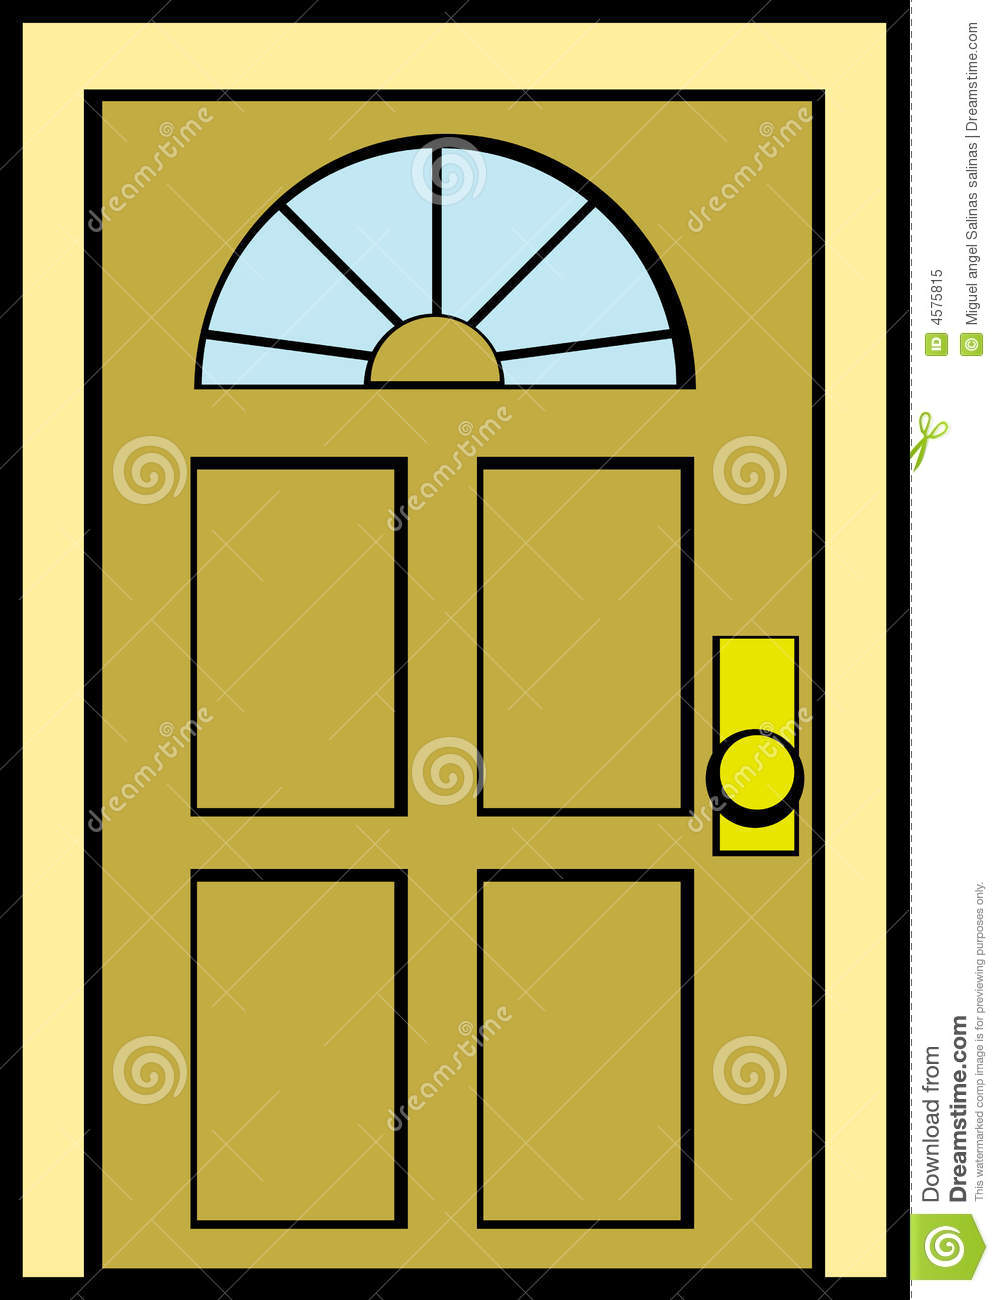 Door clipart puerta. Doorway pencil and in